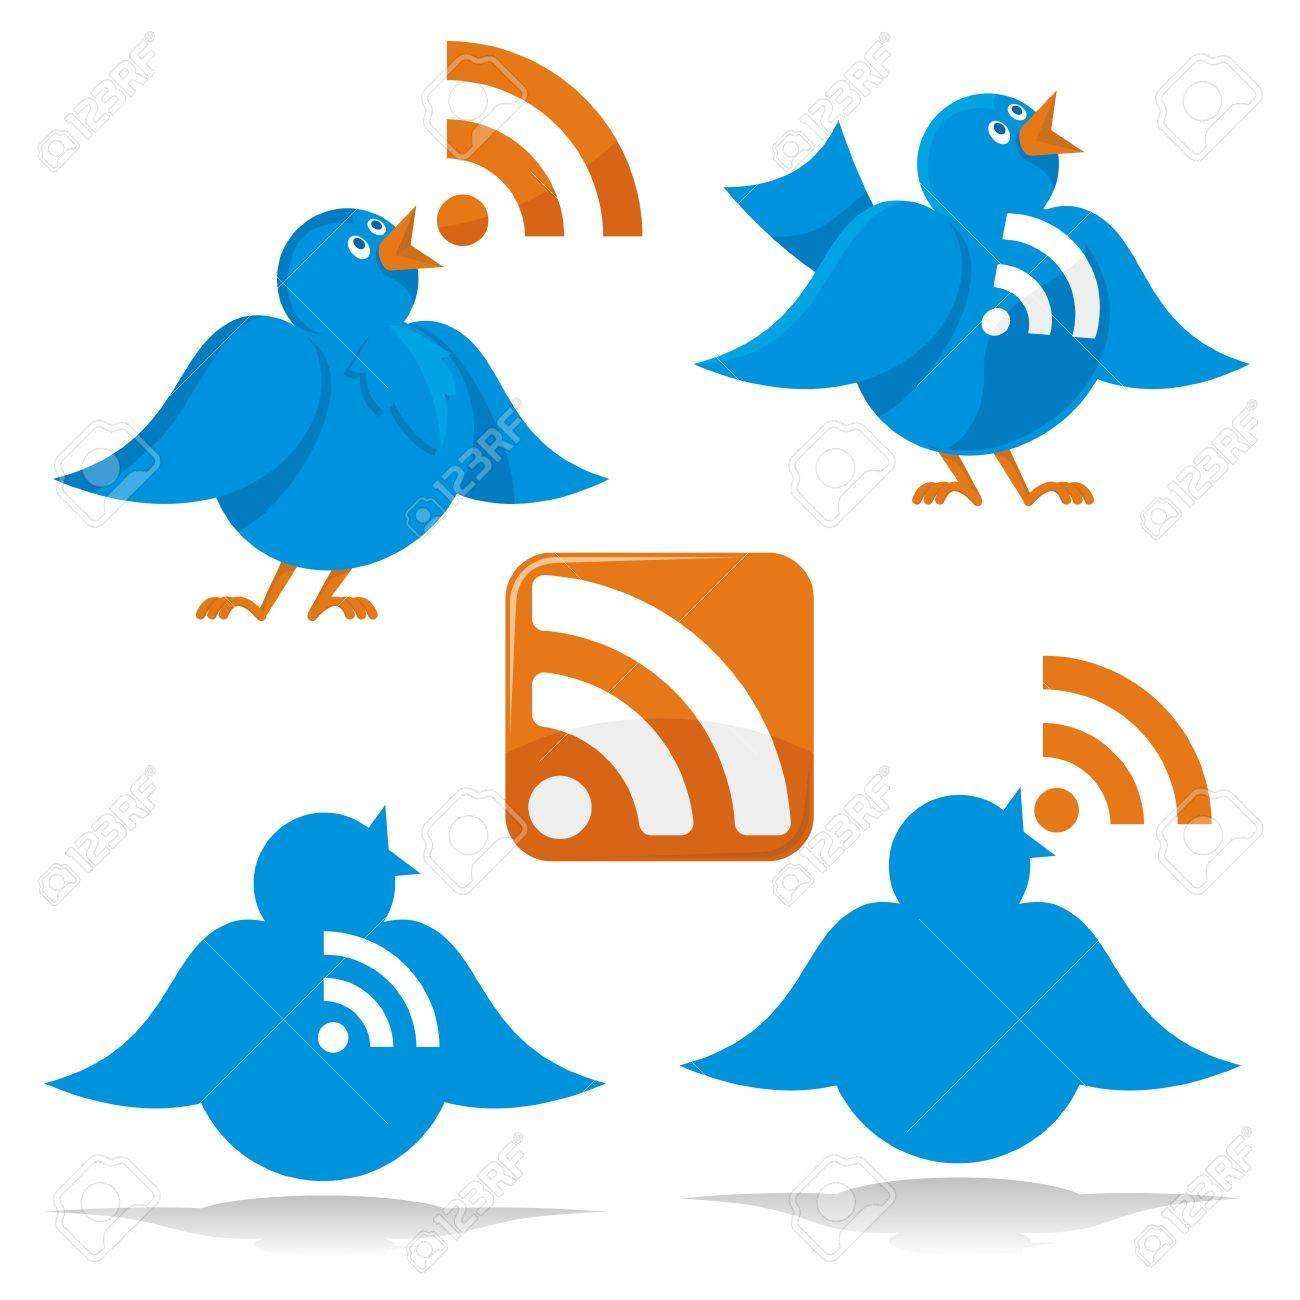 Blue twitter bird cartoon with RSS feed icons - 5821933